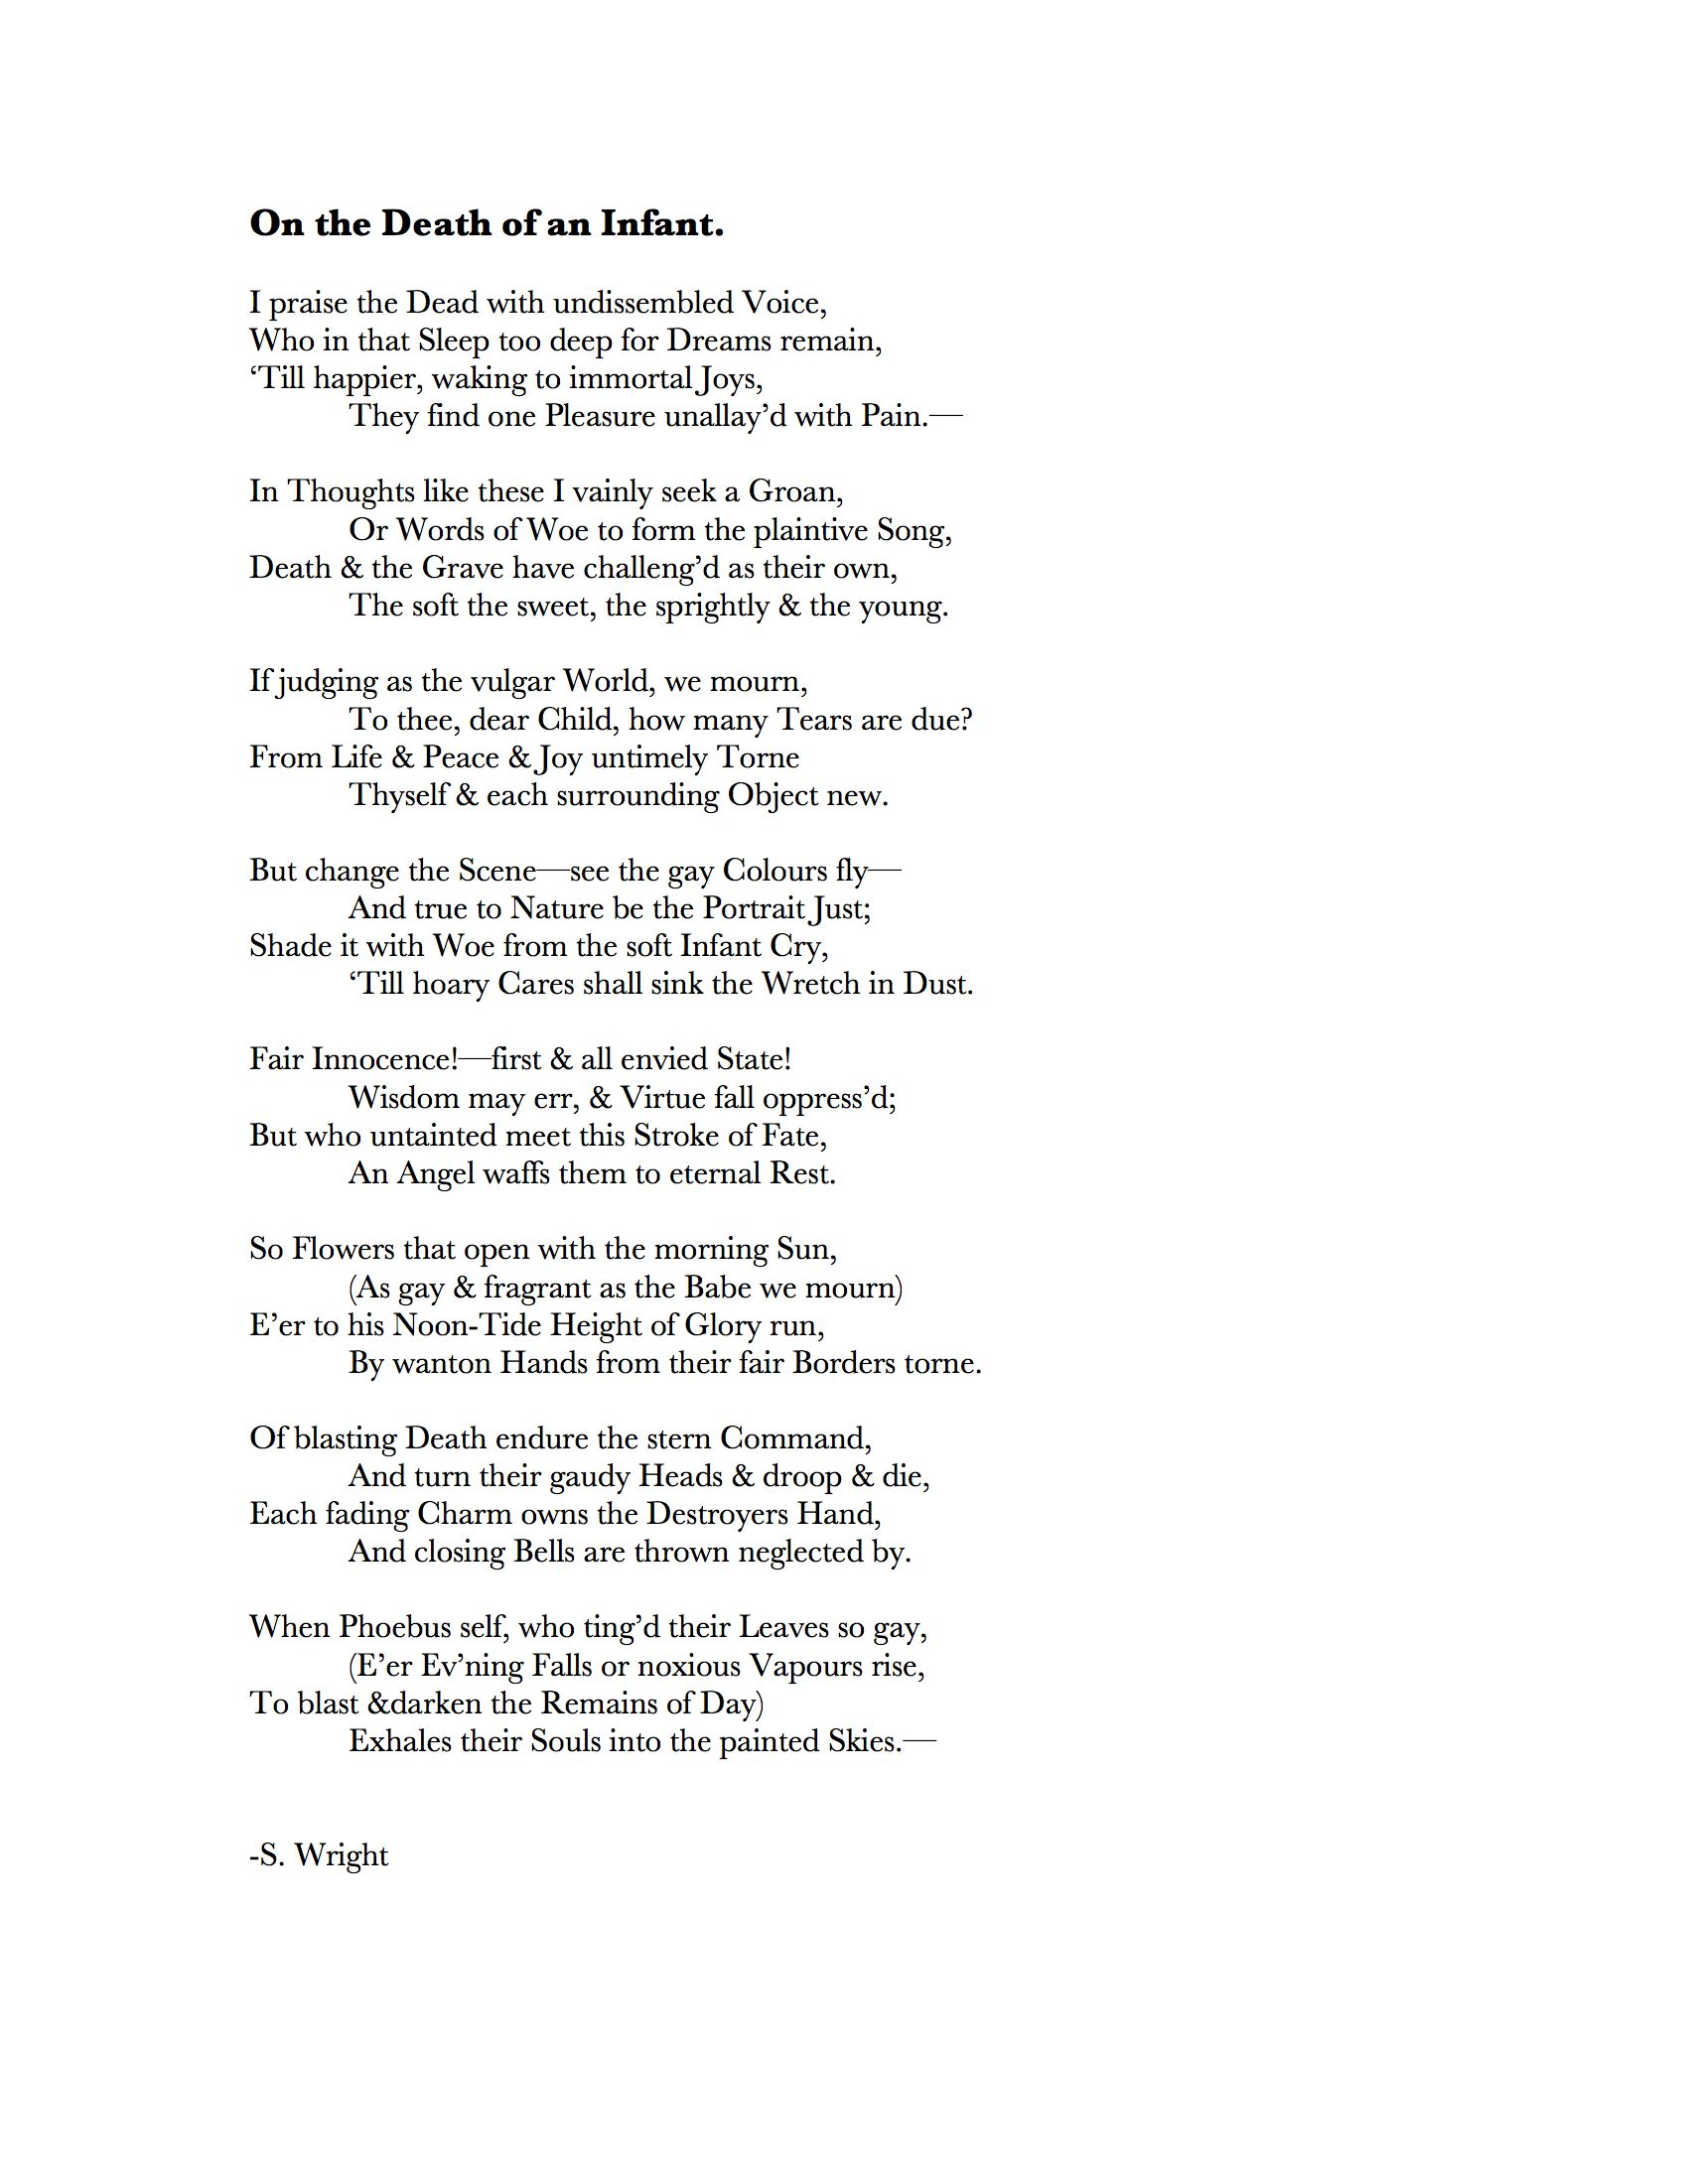 the poetic and tragic life of Ballads and poems of tragic life, by george meredith a preaching from a spanish ballad 1 ladies who in chains of wedlock chafe at an unequal yoke.